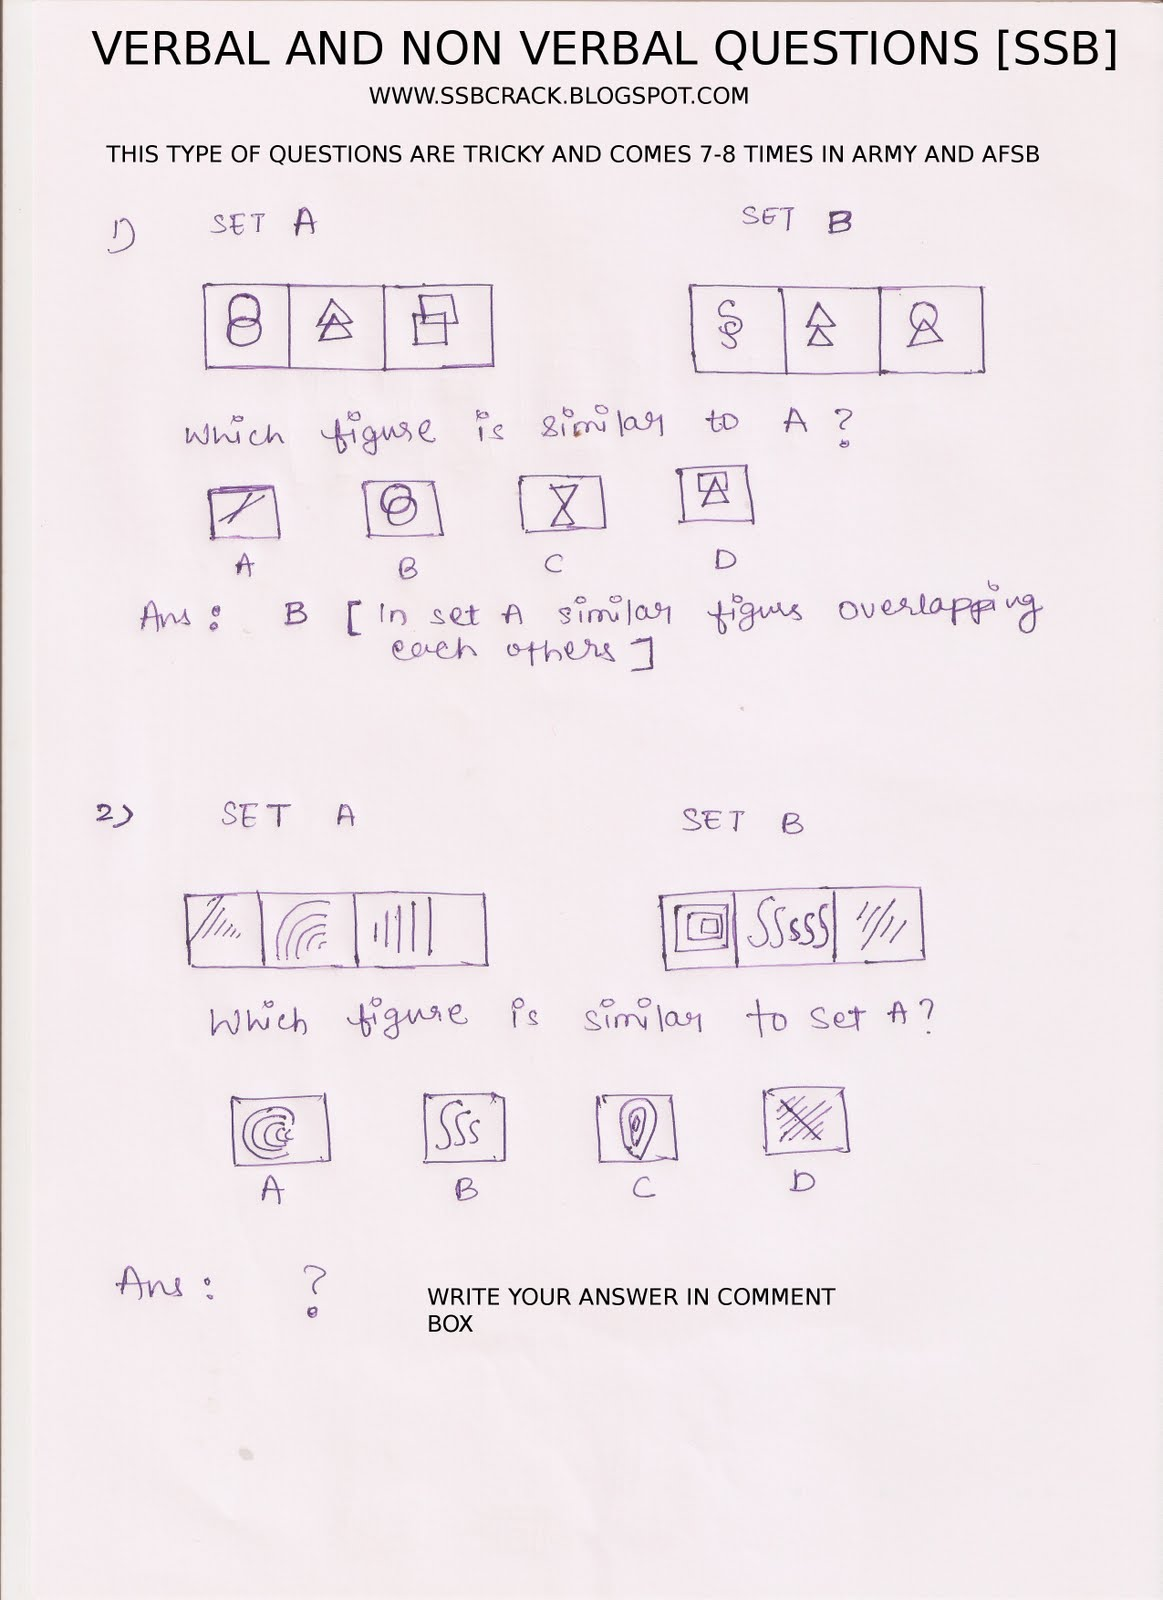 cube and dice question in oir test ssb similar figure questions